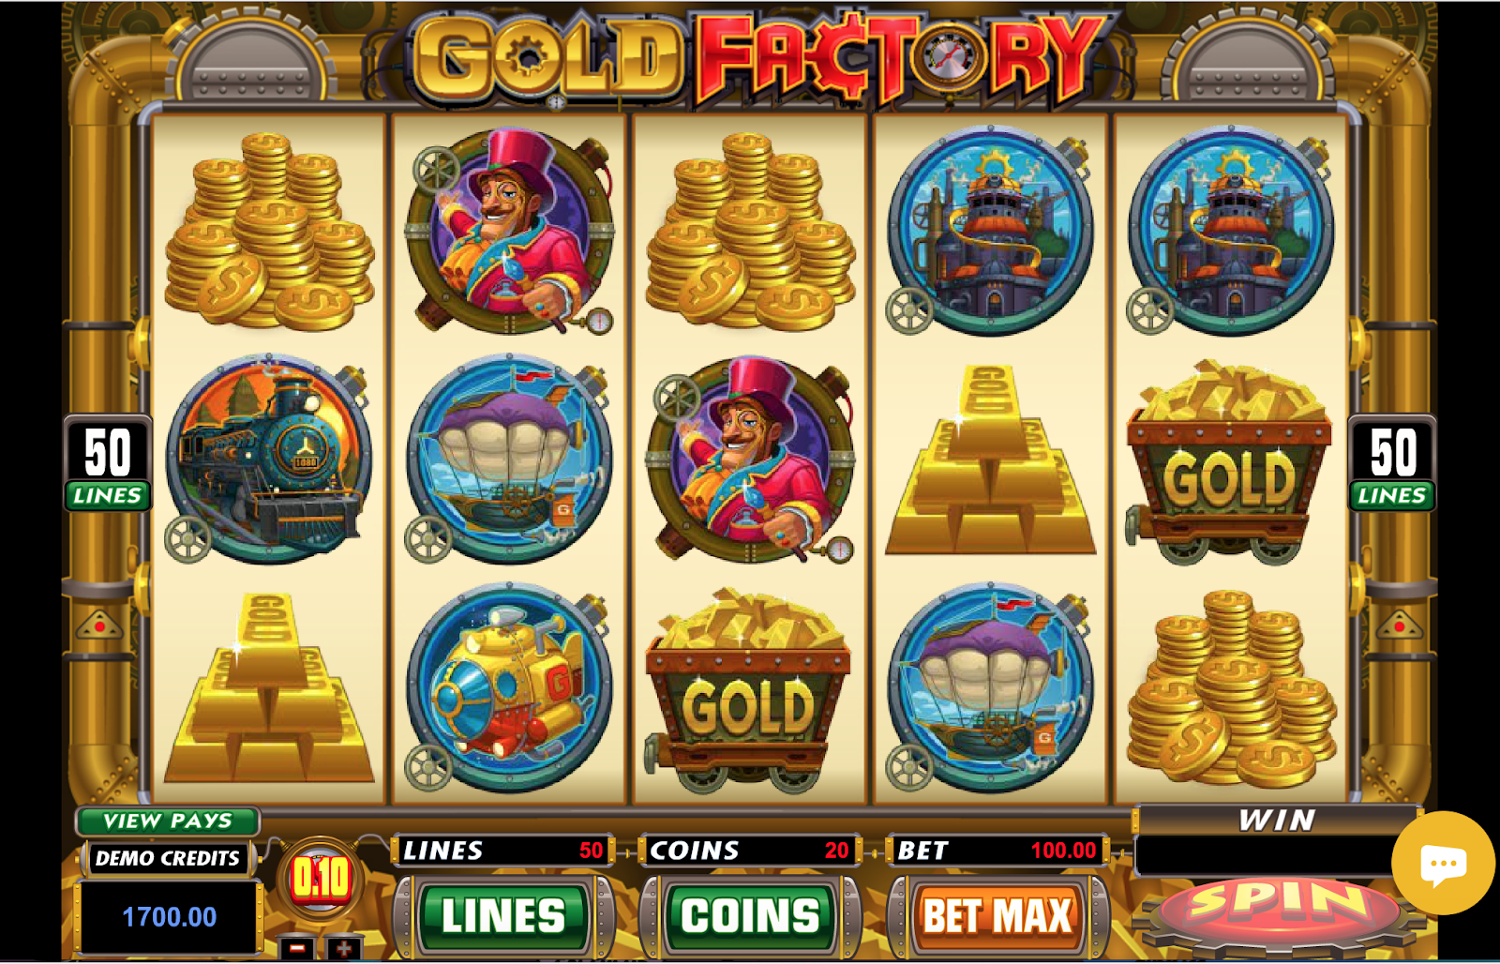 Gold Factory Gameplay